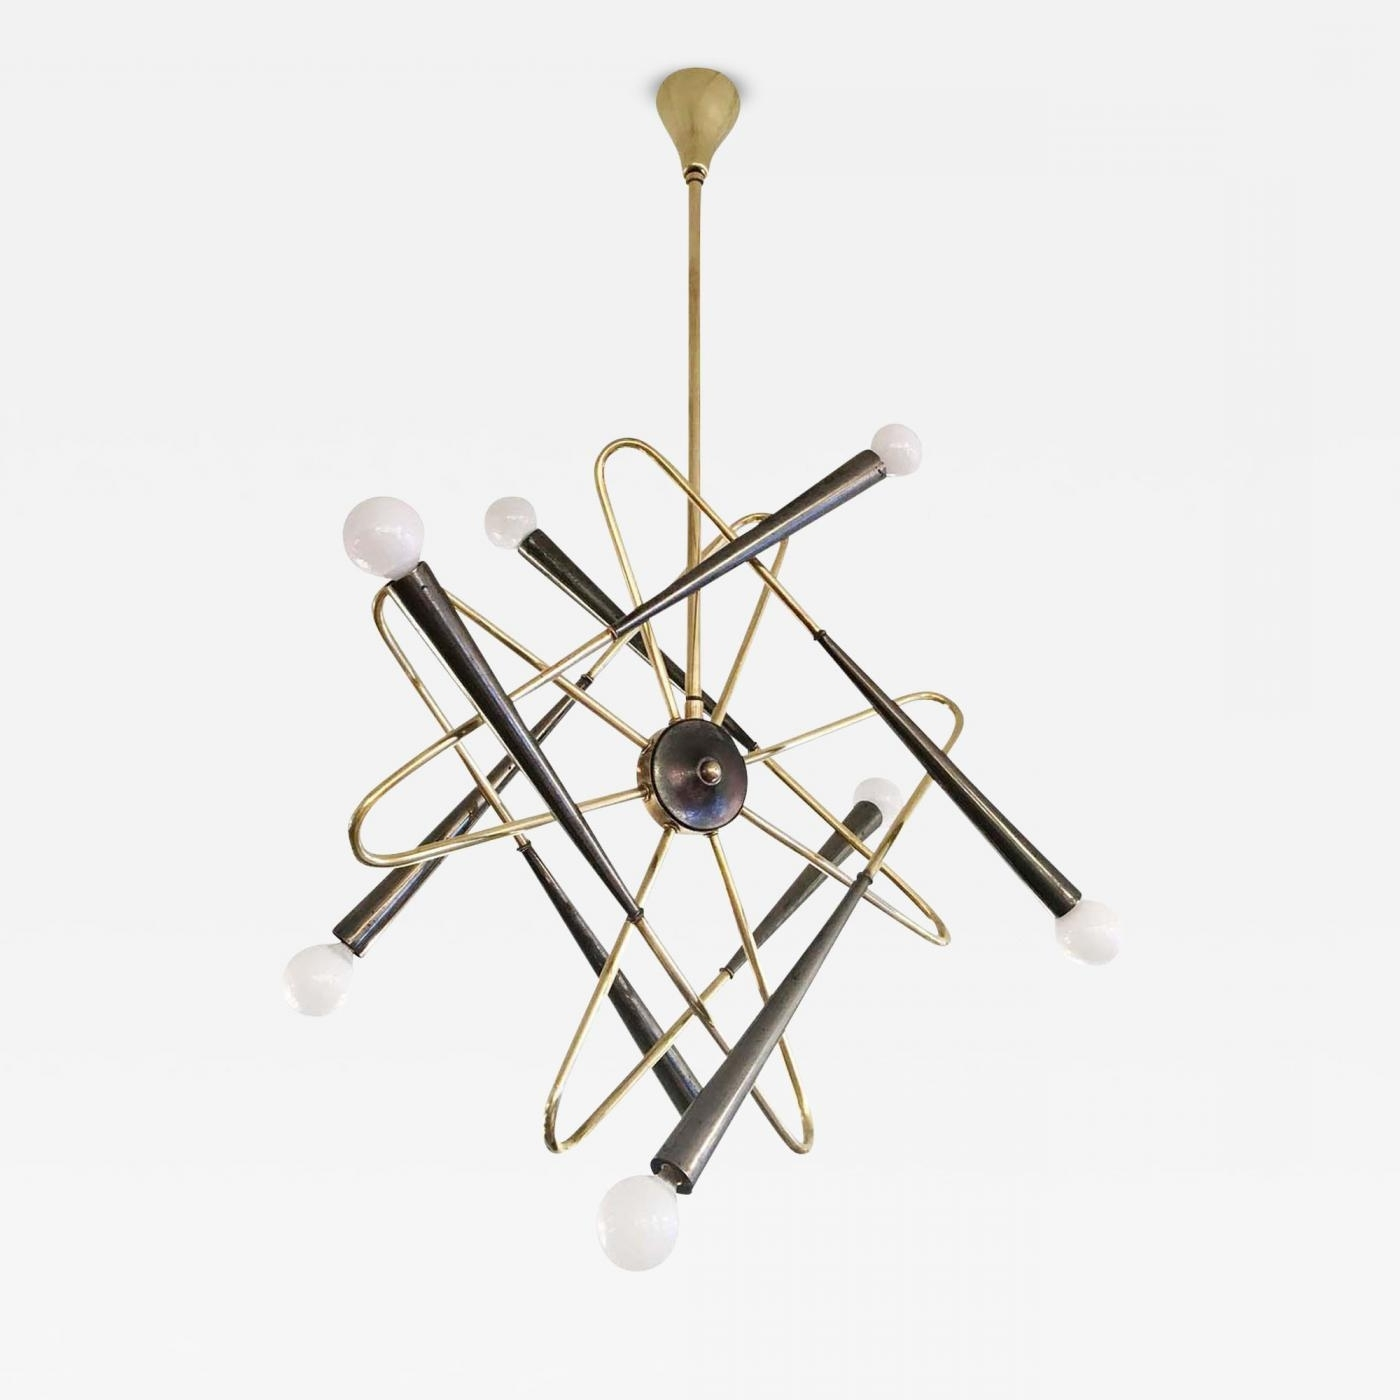 Unusual Chandeliers Throughout Latest Chandelier: Glamorous Whimsical Chandeliers Whimsical Chandeliers (View 16 of 20)